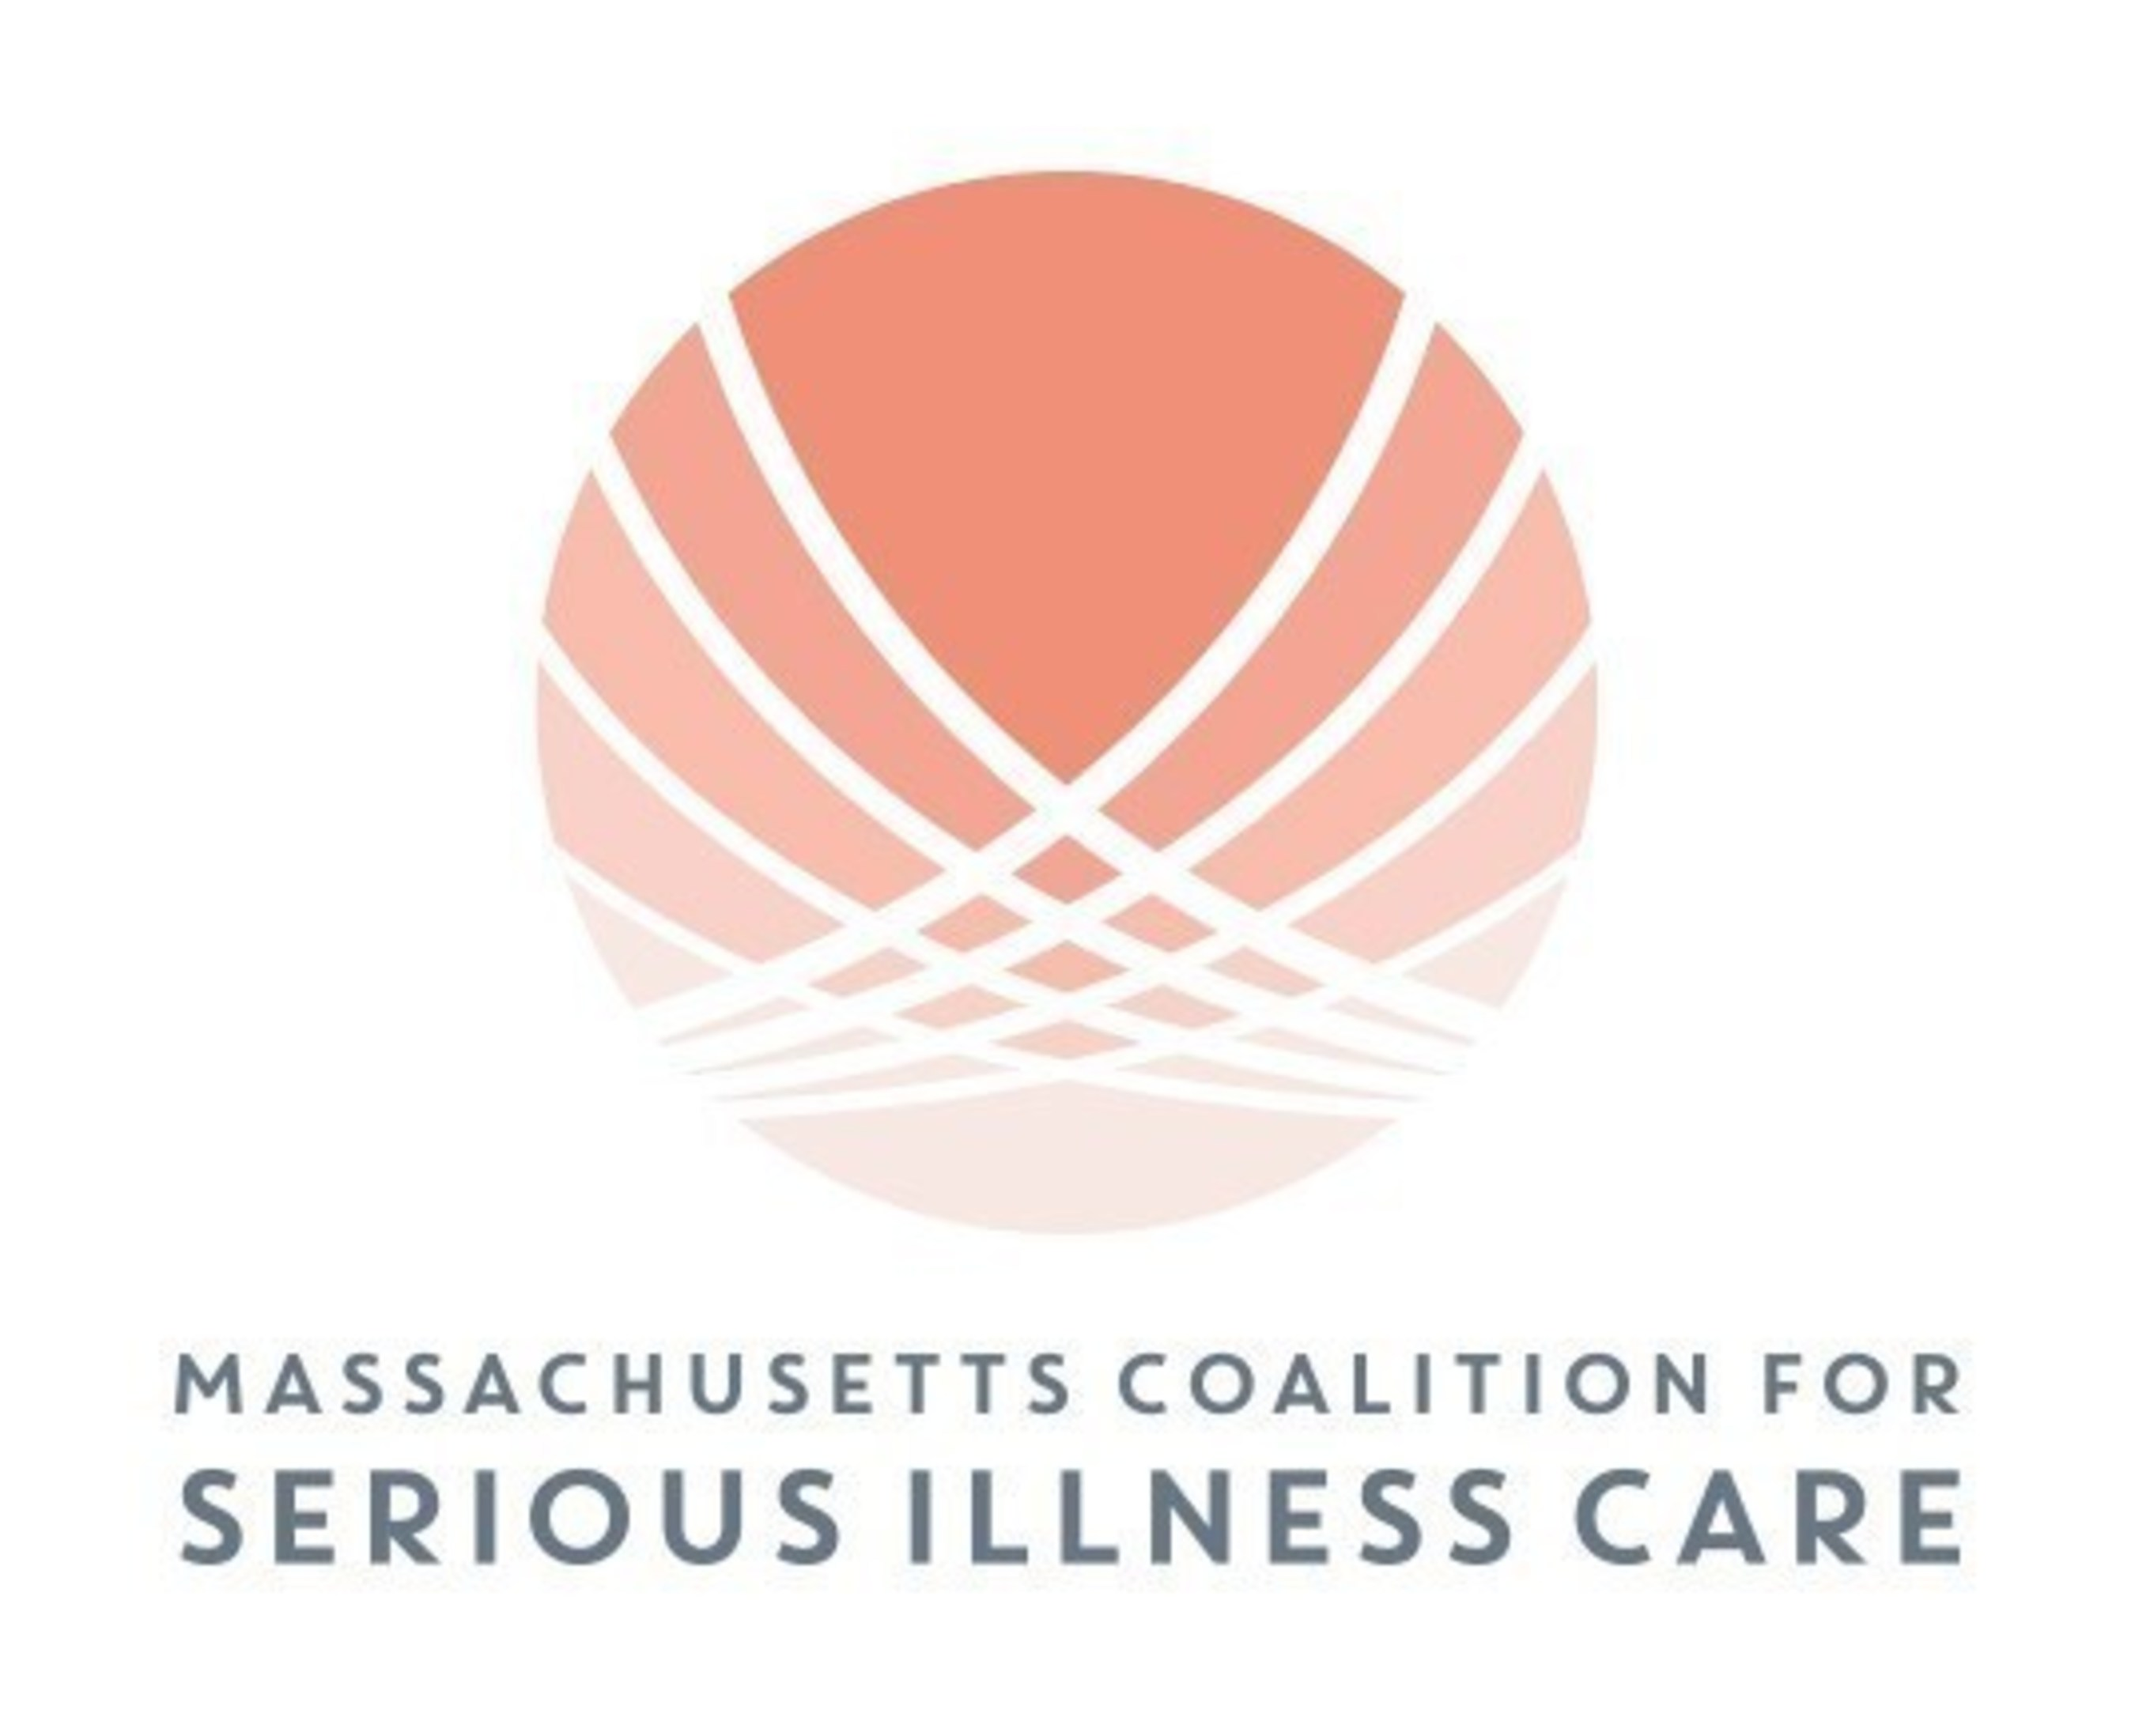 Massachusetts Coalition for Serious Illness Care